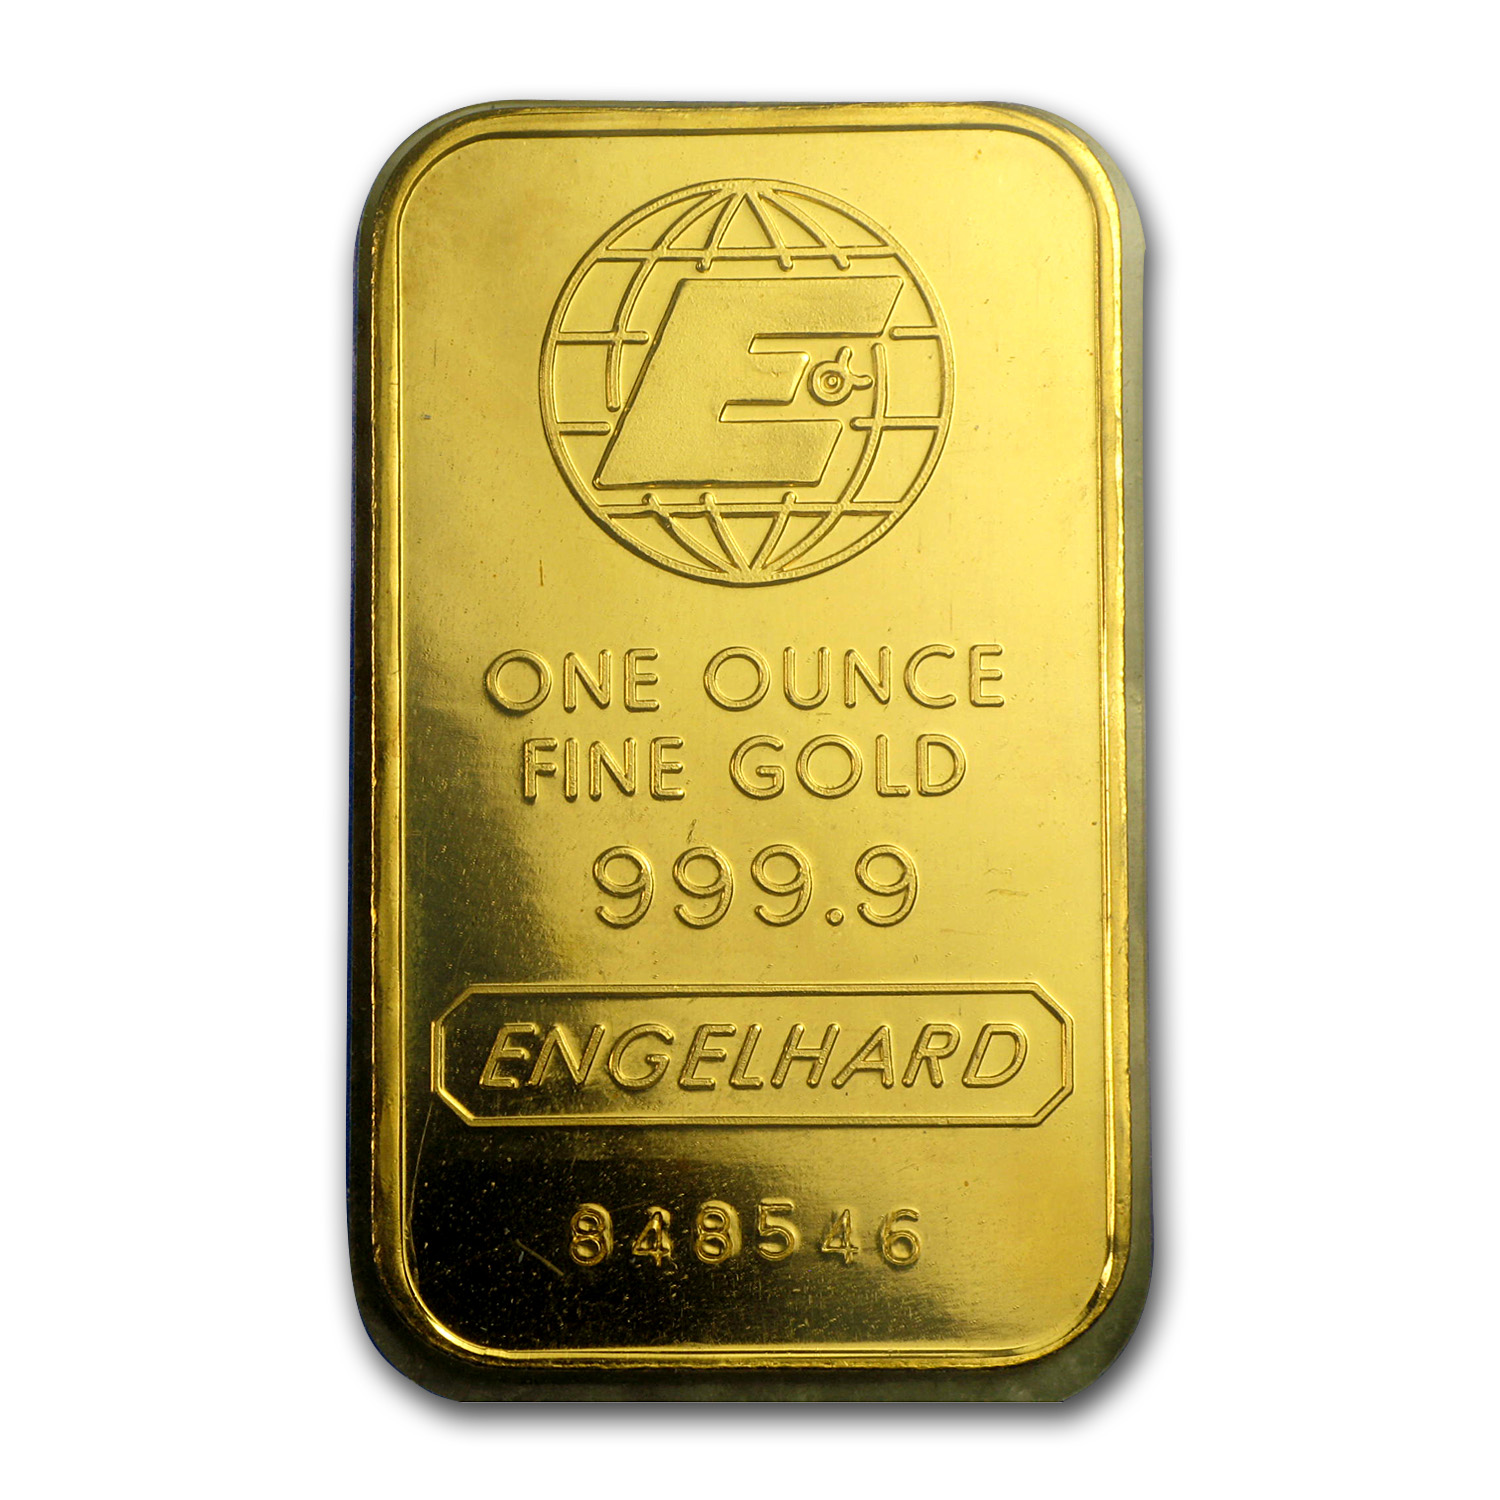 1 oz Gold Bars - Engelhard (In Assay)